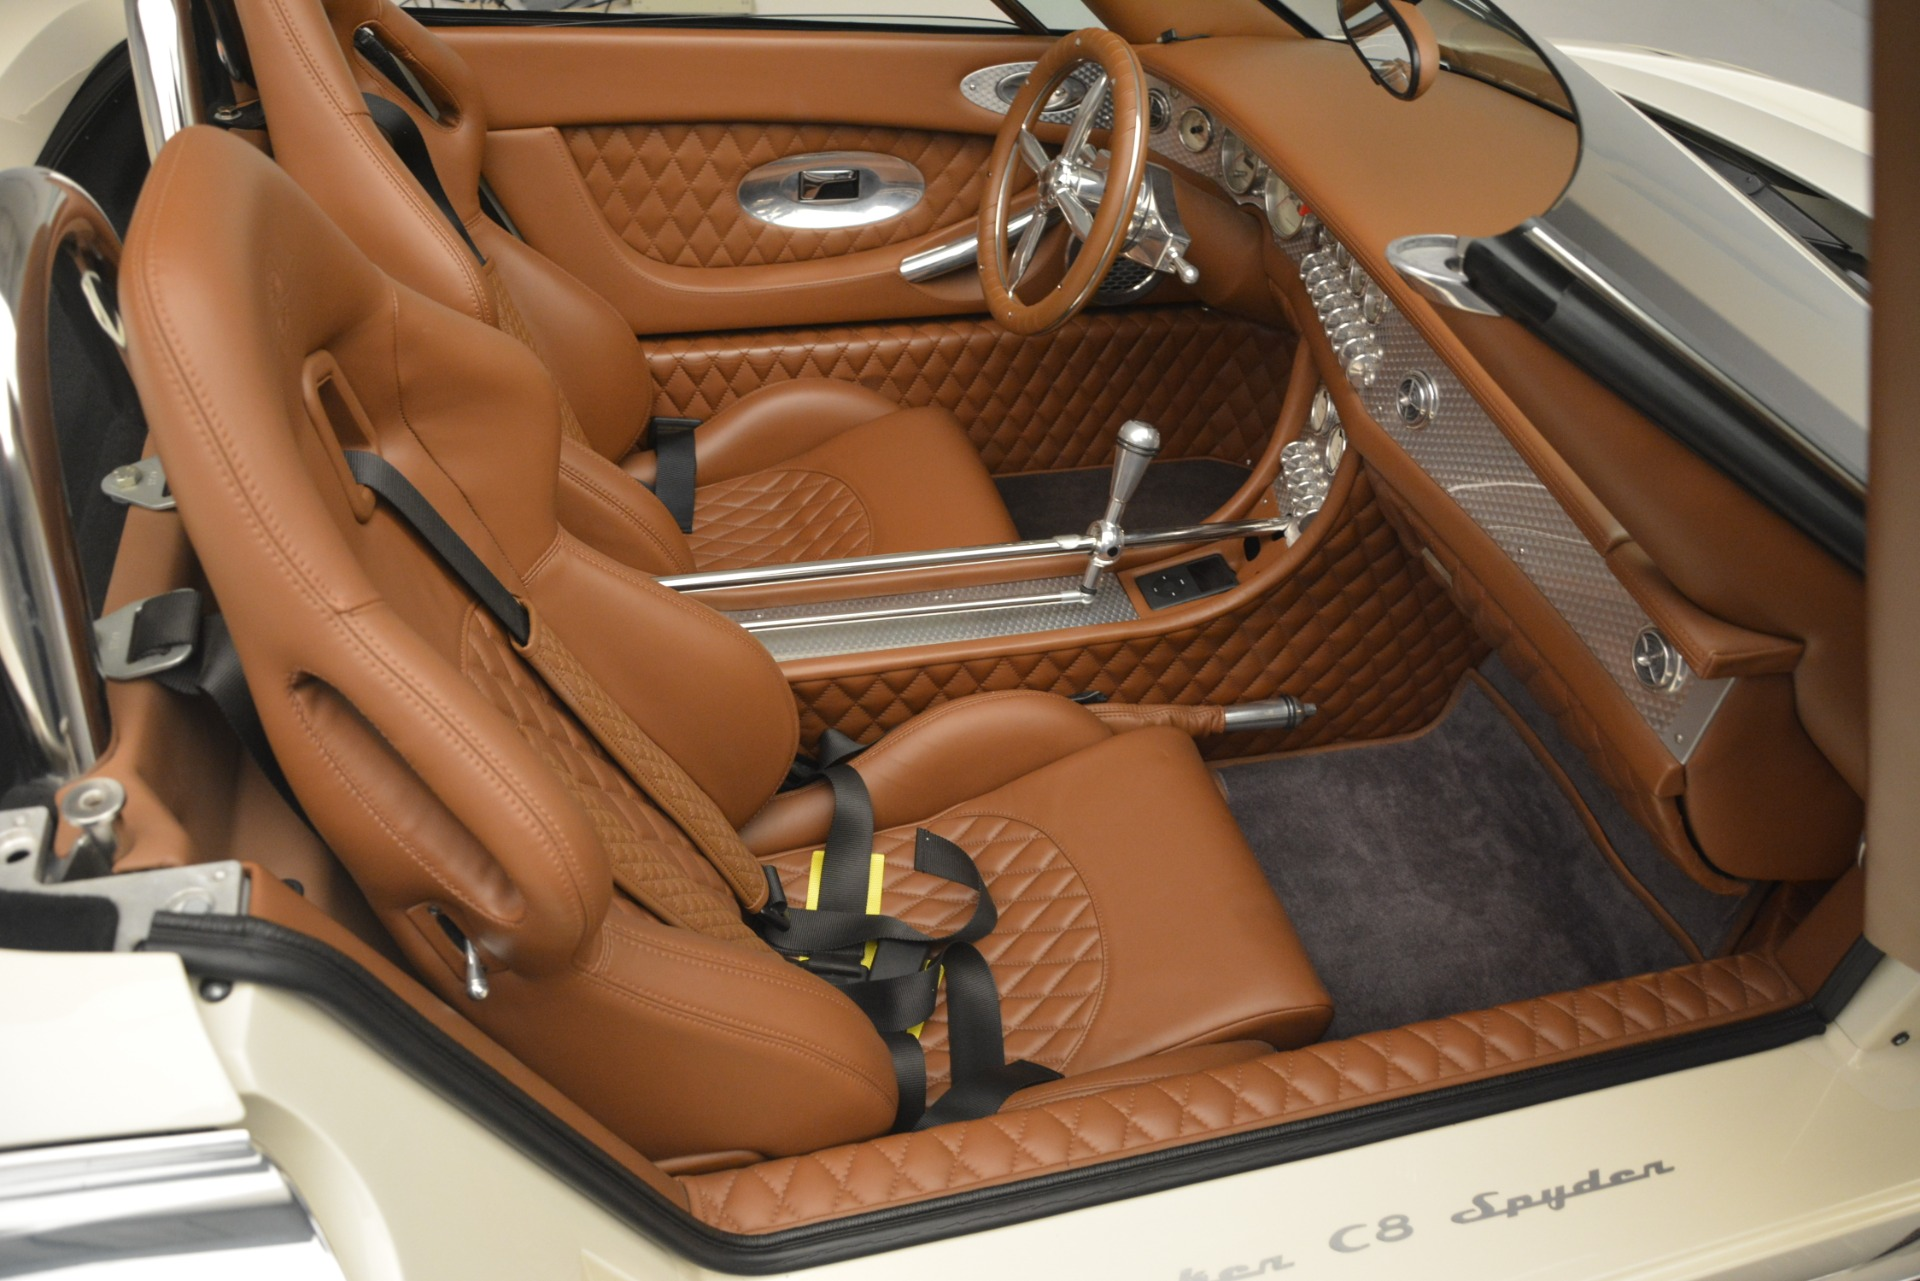 Used 2006 Spyker C8 Spyder  For Sale In Greenwich, CT. Alfa Romeo of Greenwich, 7463 1661_p22